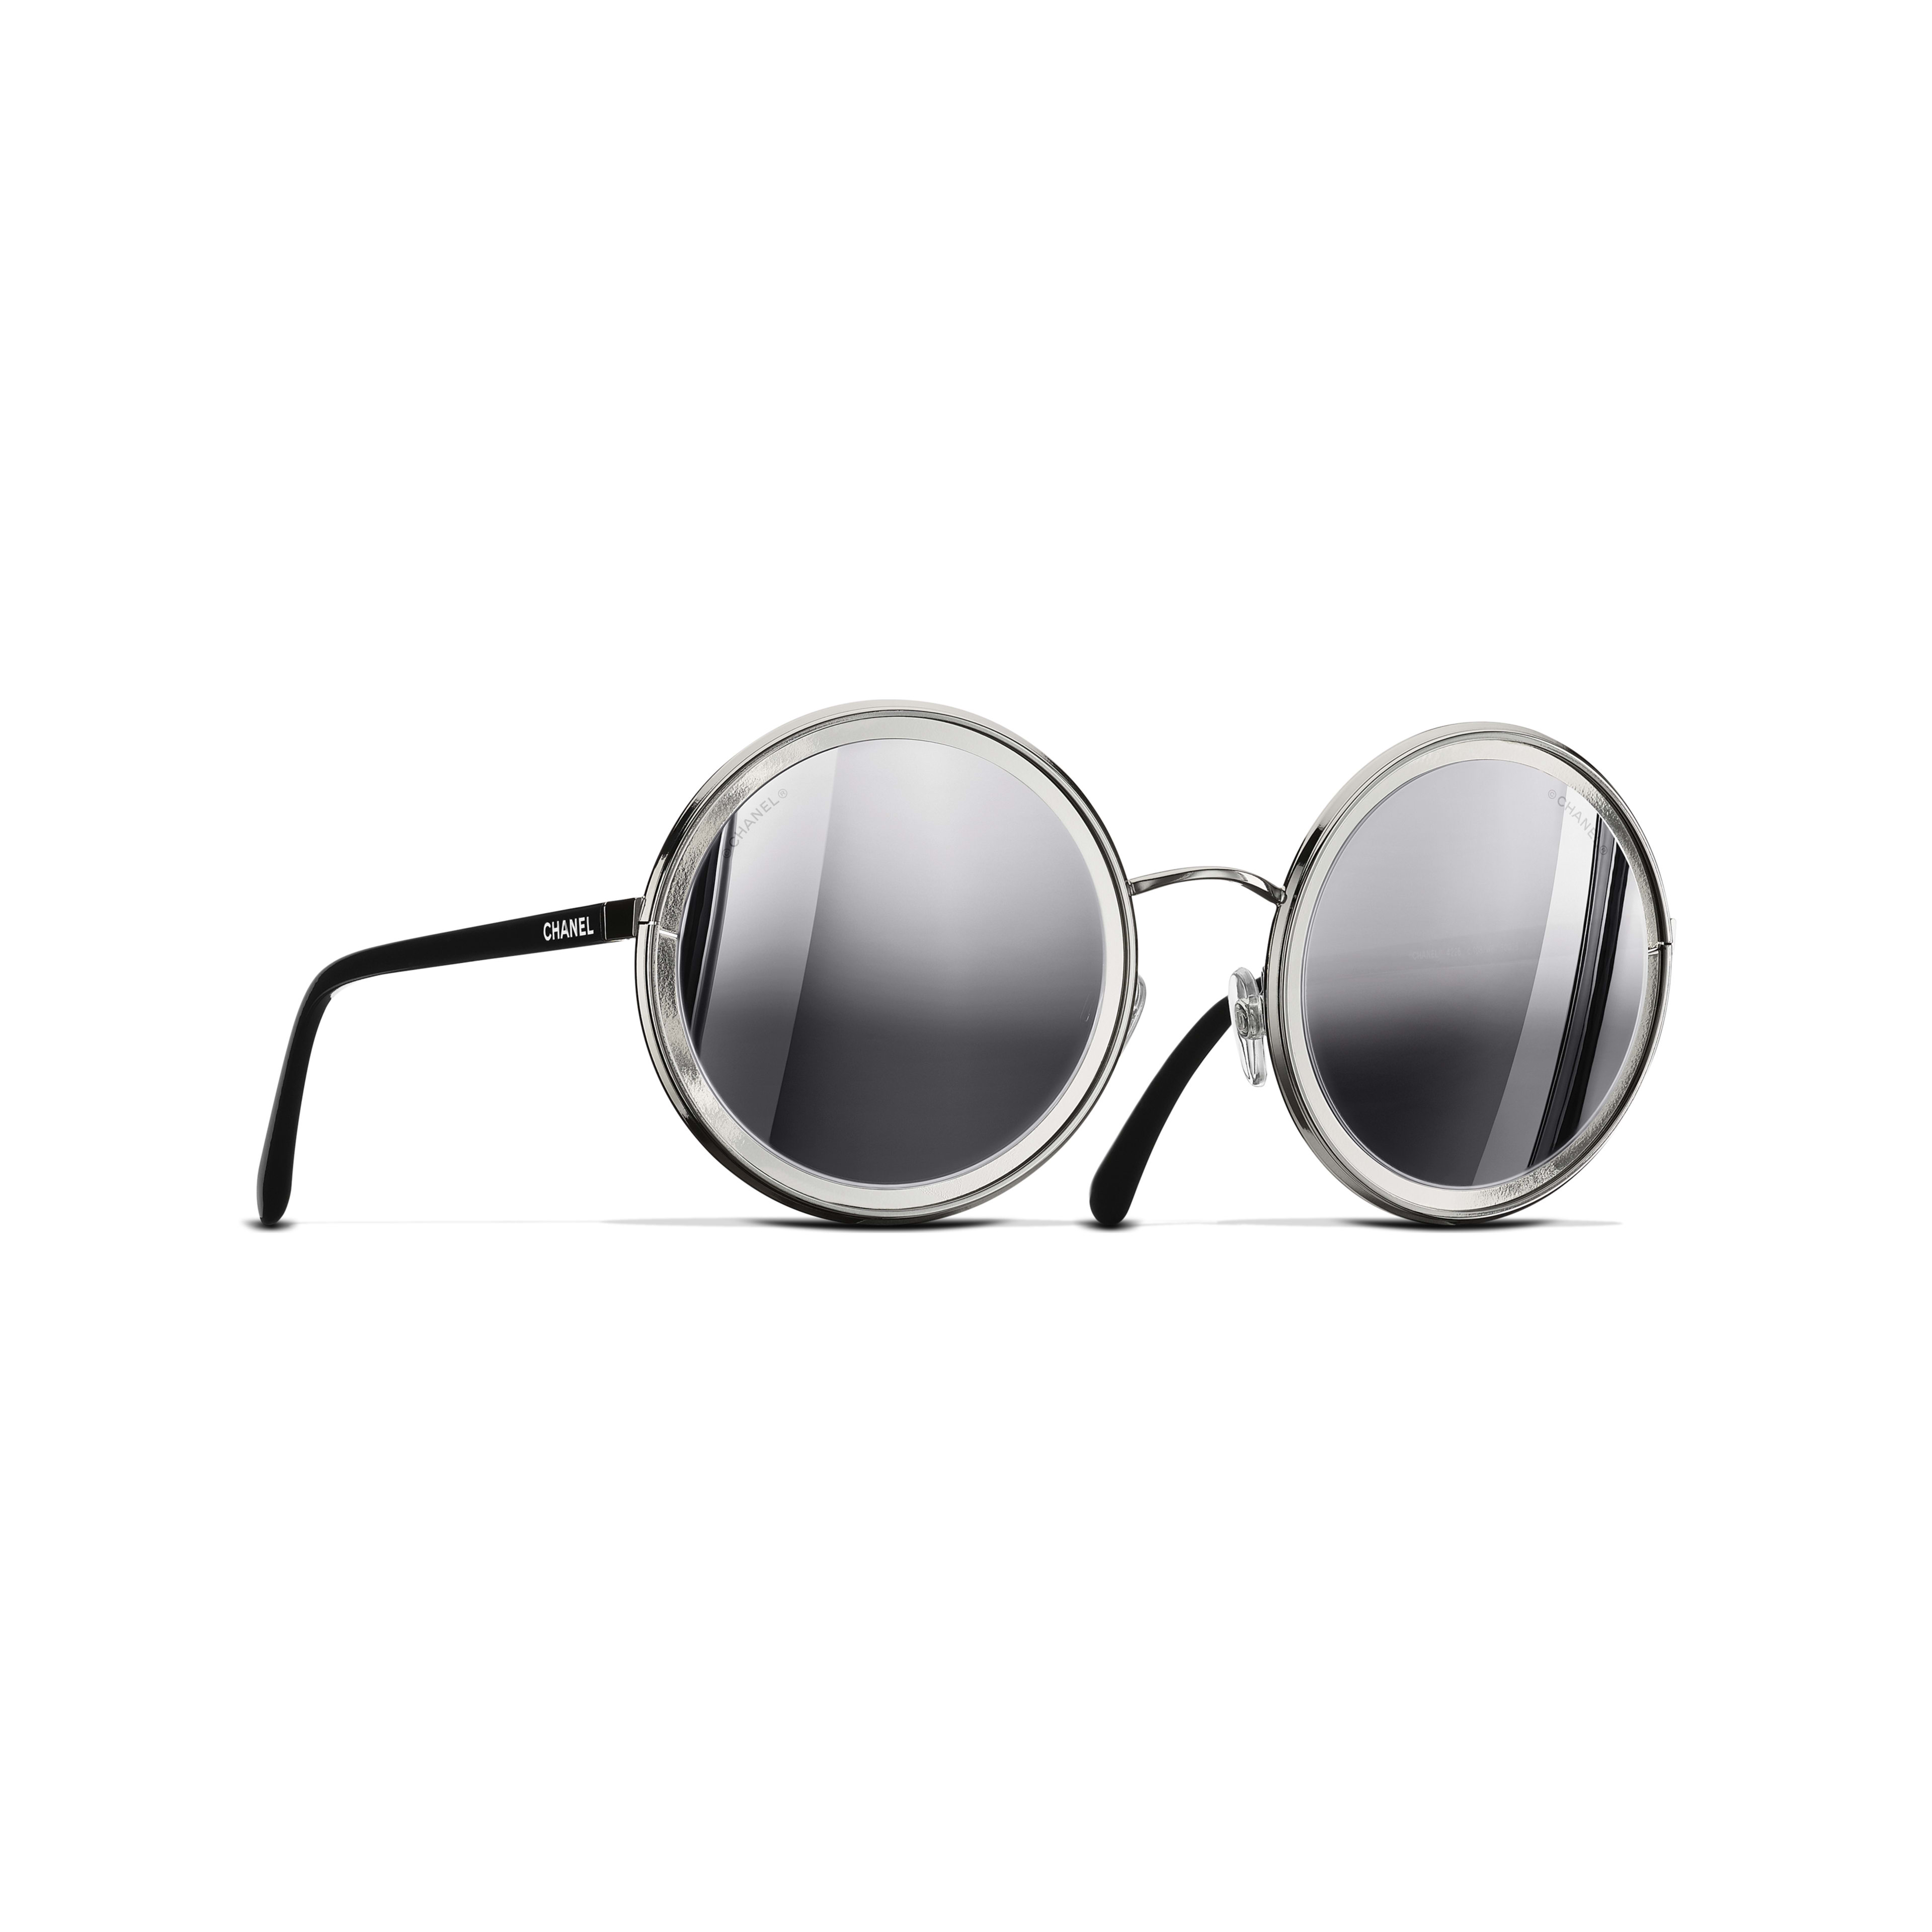 Round Sunglasses Metal Silver -                                               view 1 - see full sized version